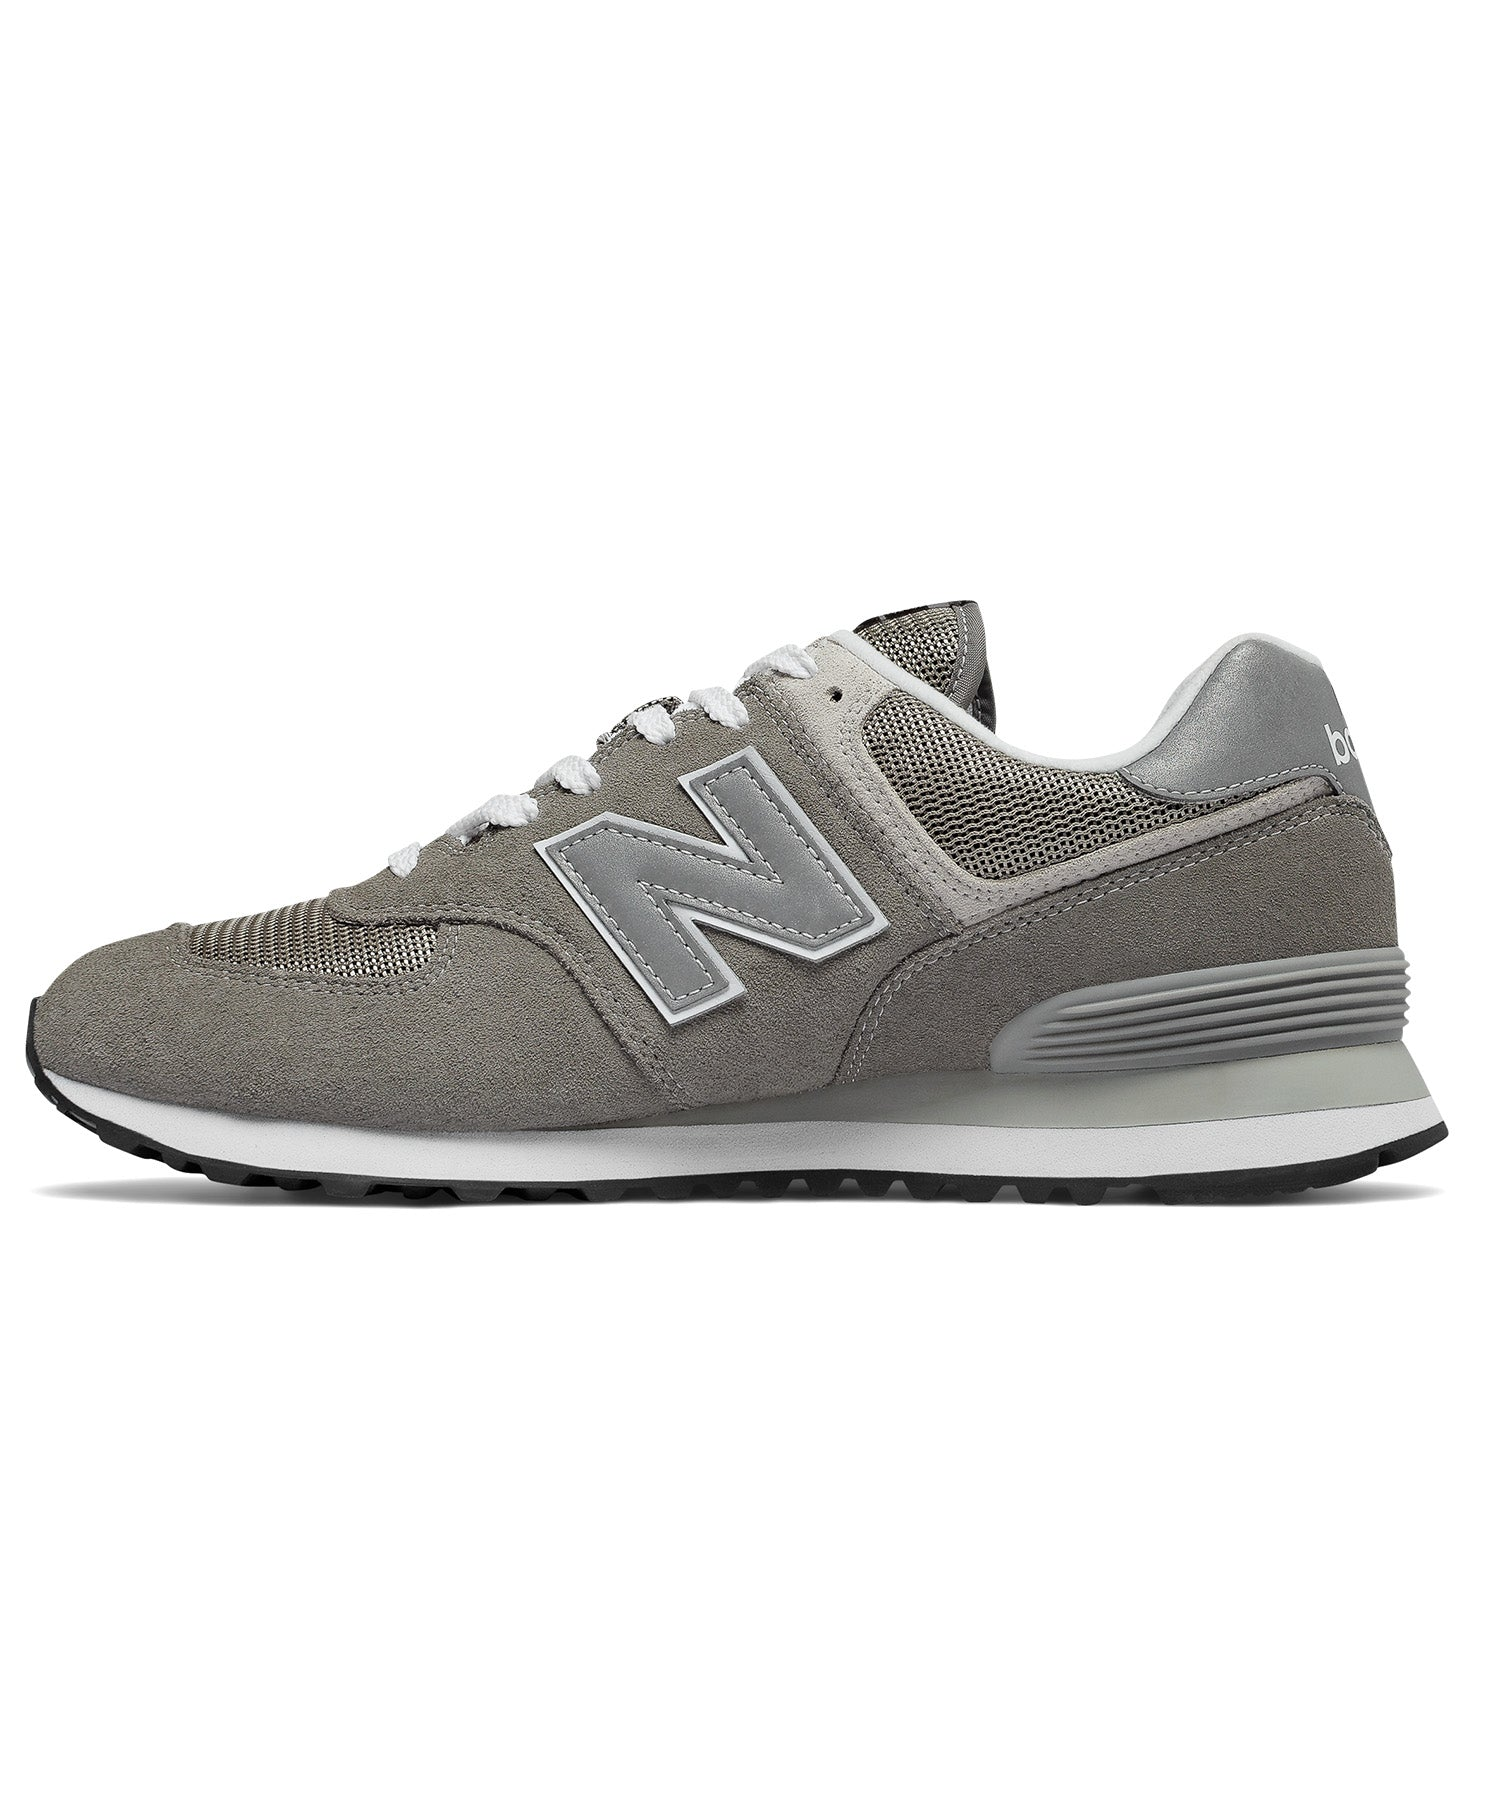 more photos 02e1d 576fb New Balance 574 ICONIC GREY - Todd Snyder